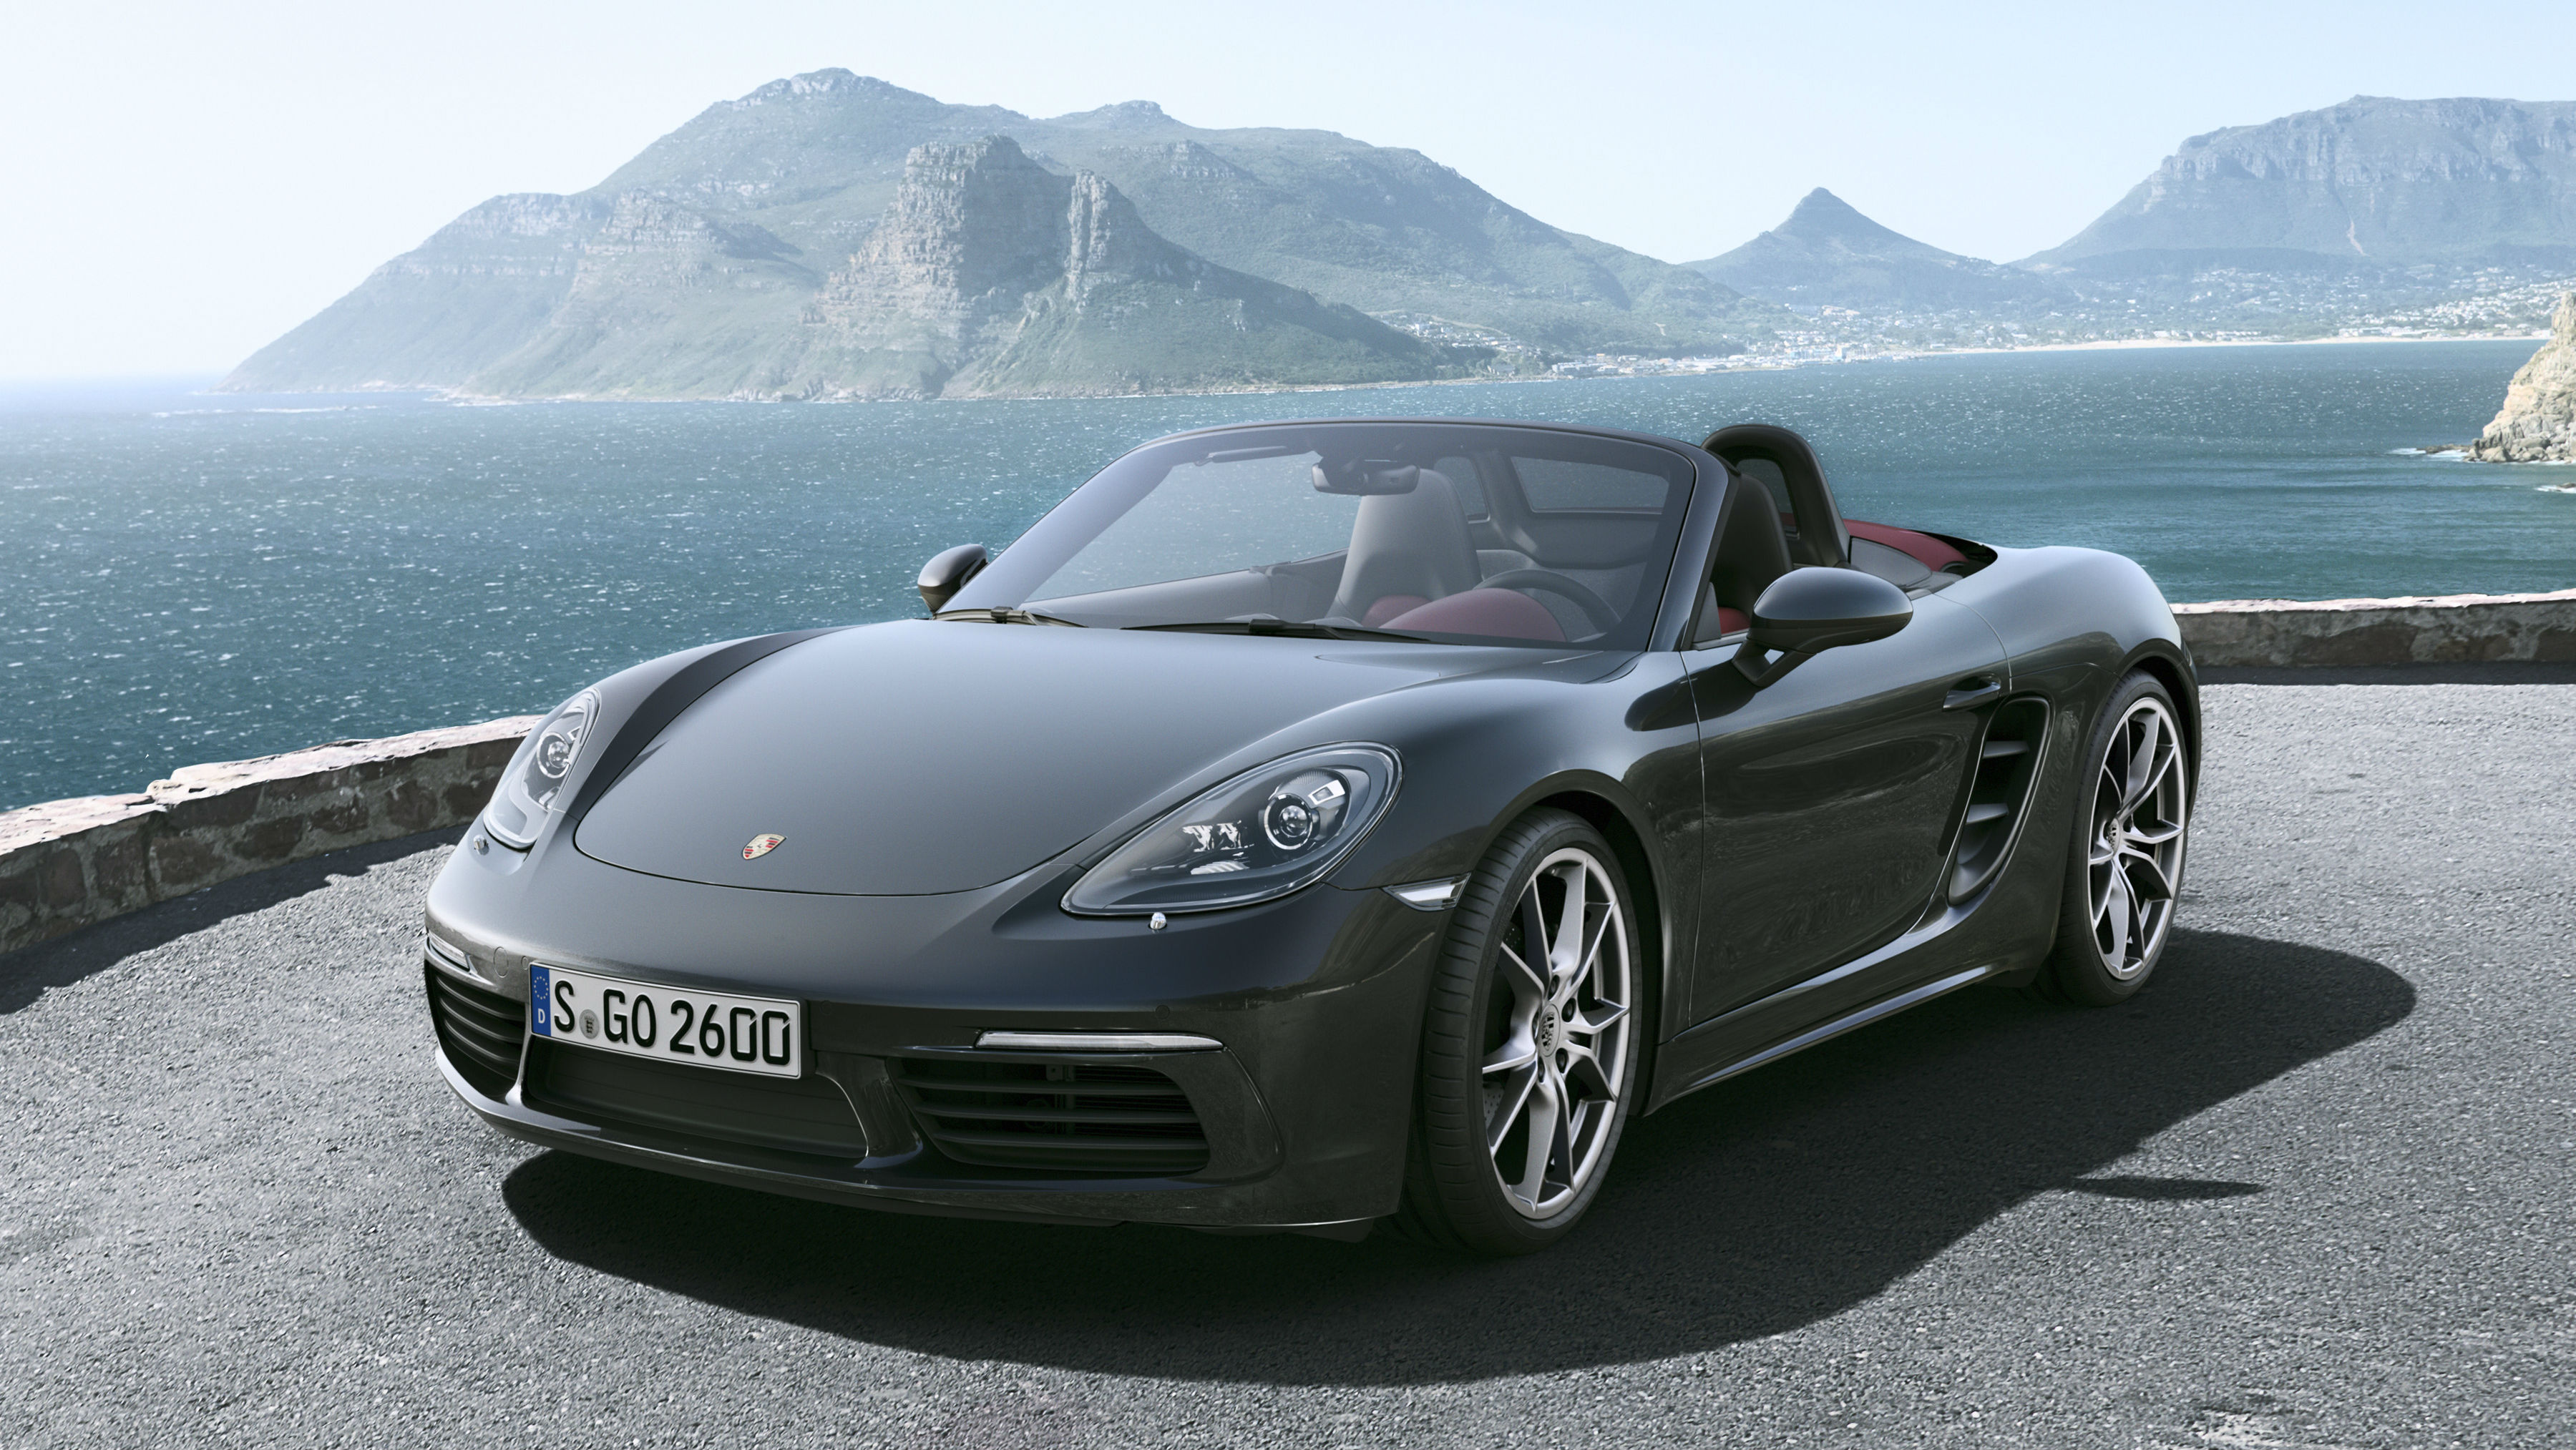 Porsche 718 Cayman exterior photo